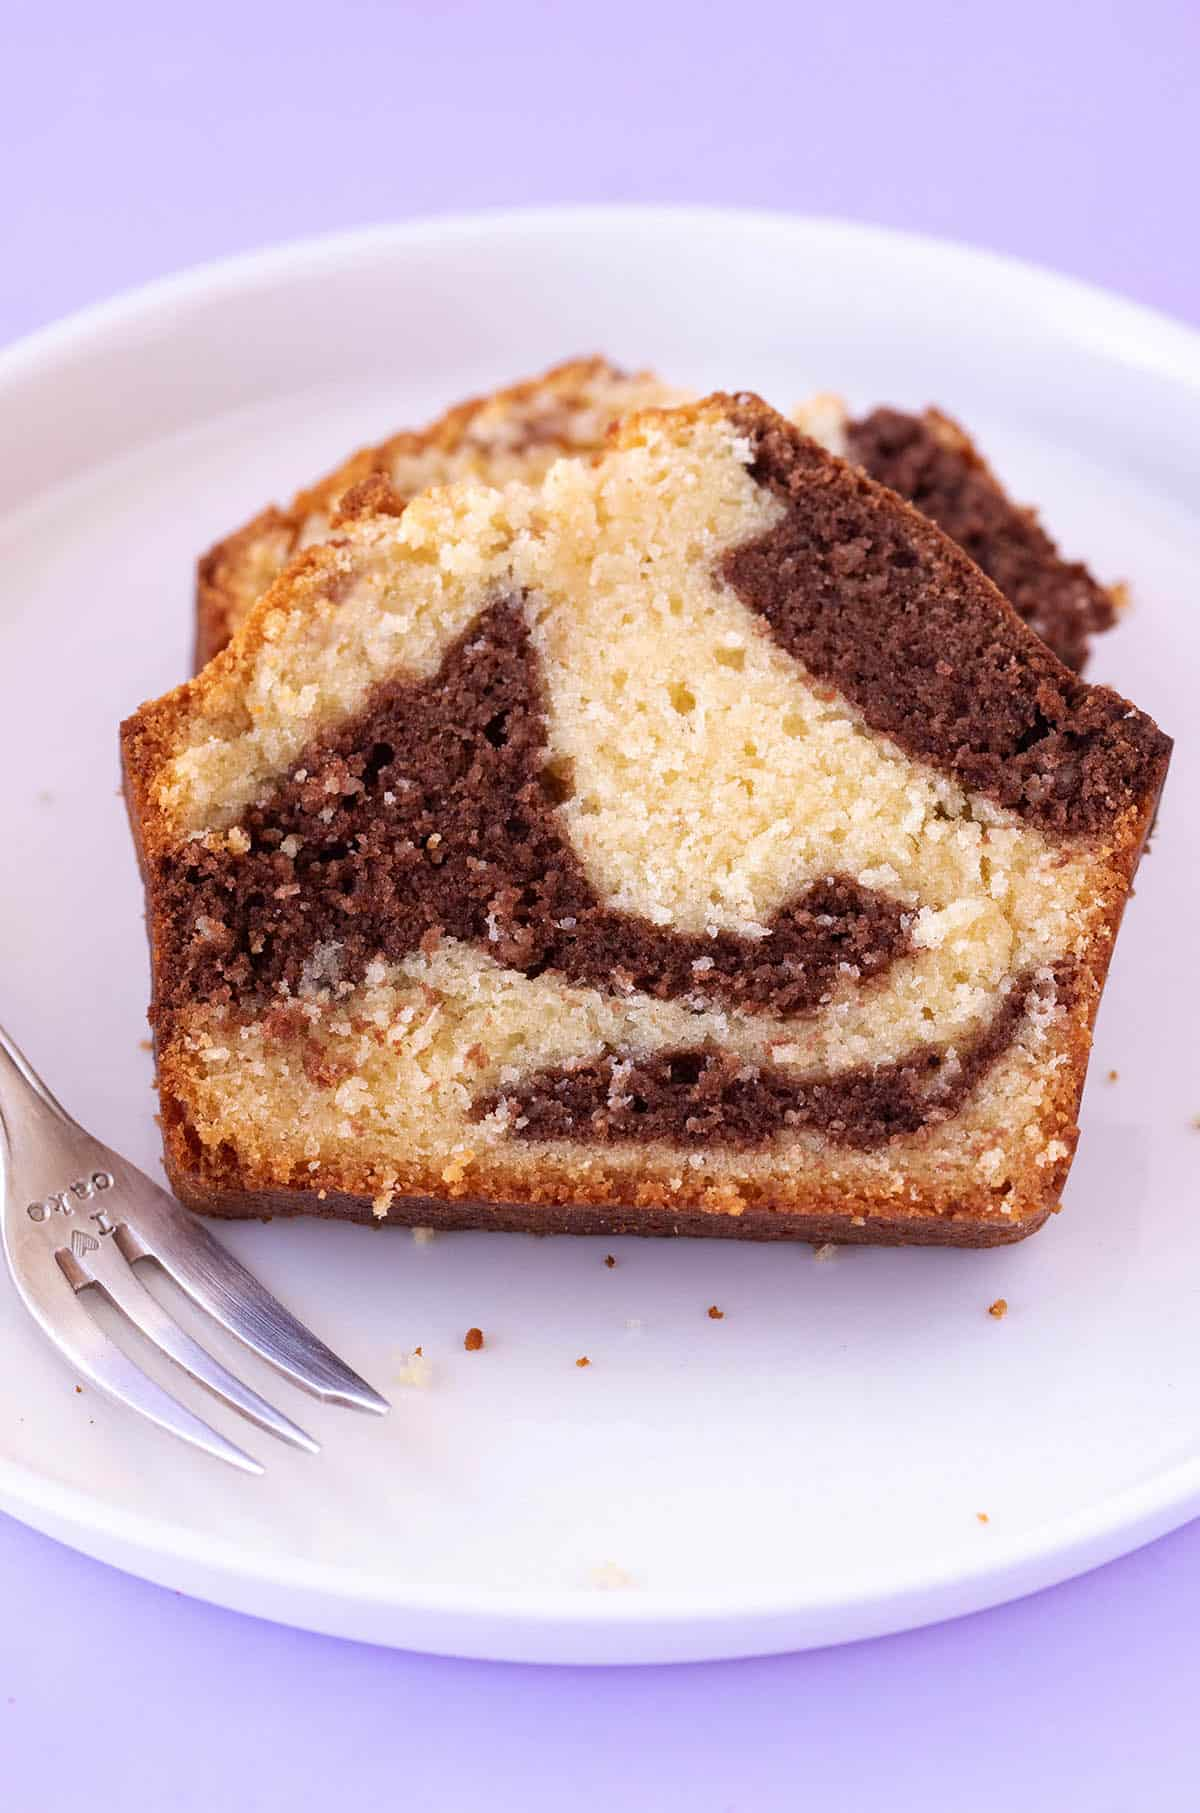 Close up of a slice of homemade Marble Cake on a white plate with a decorative fork.